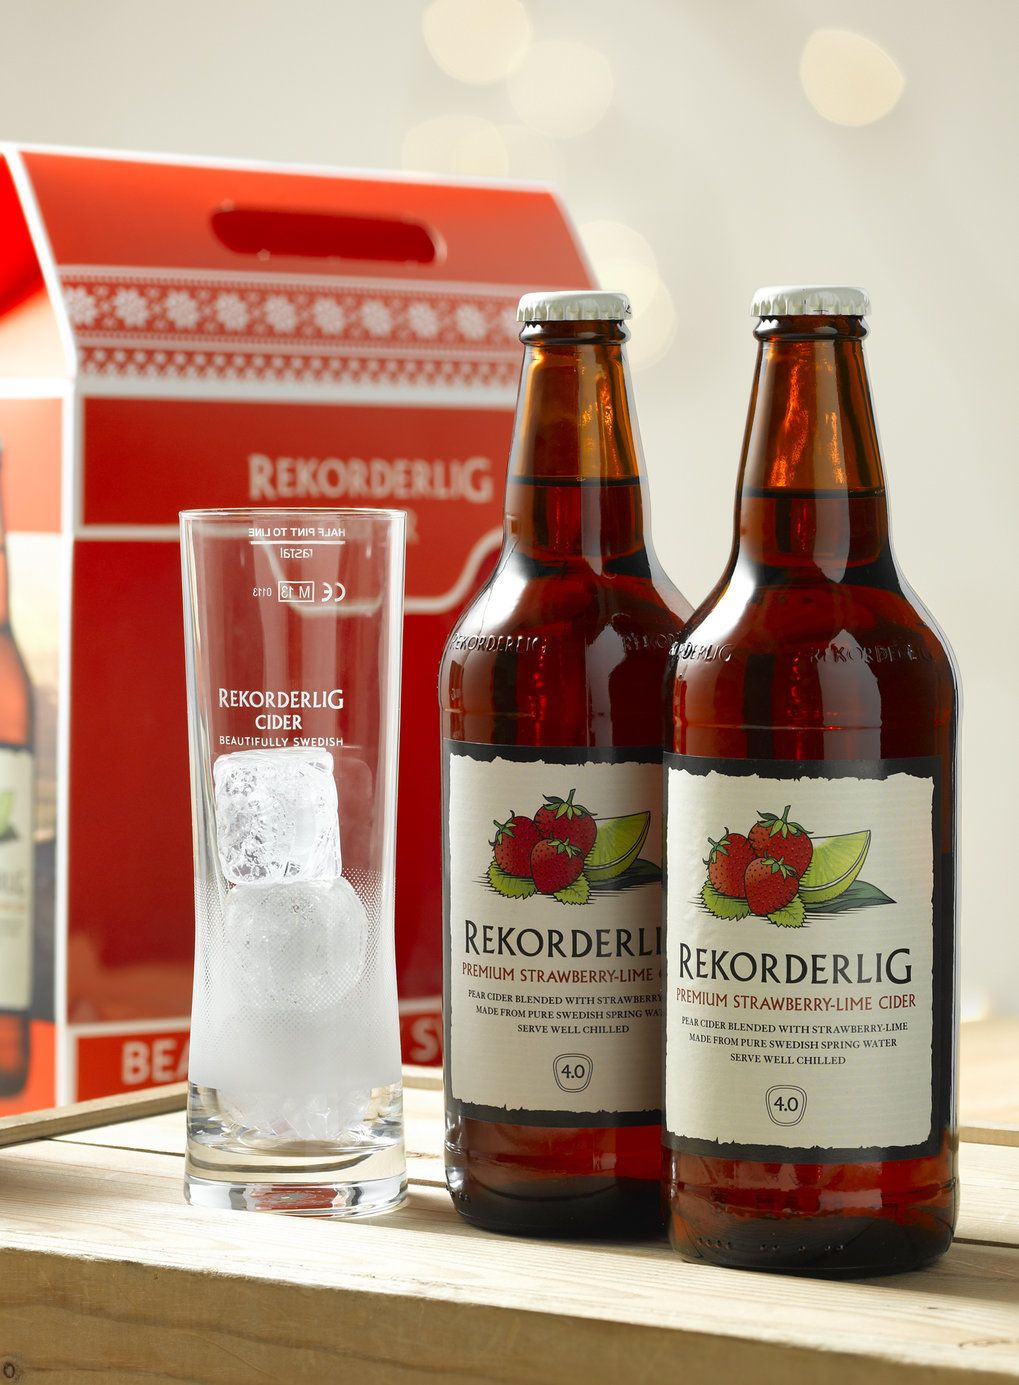 Rekorderlig Strawberry Lime Speciality Gift Set Wine Recipes Strawberry Lime Food